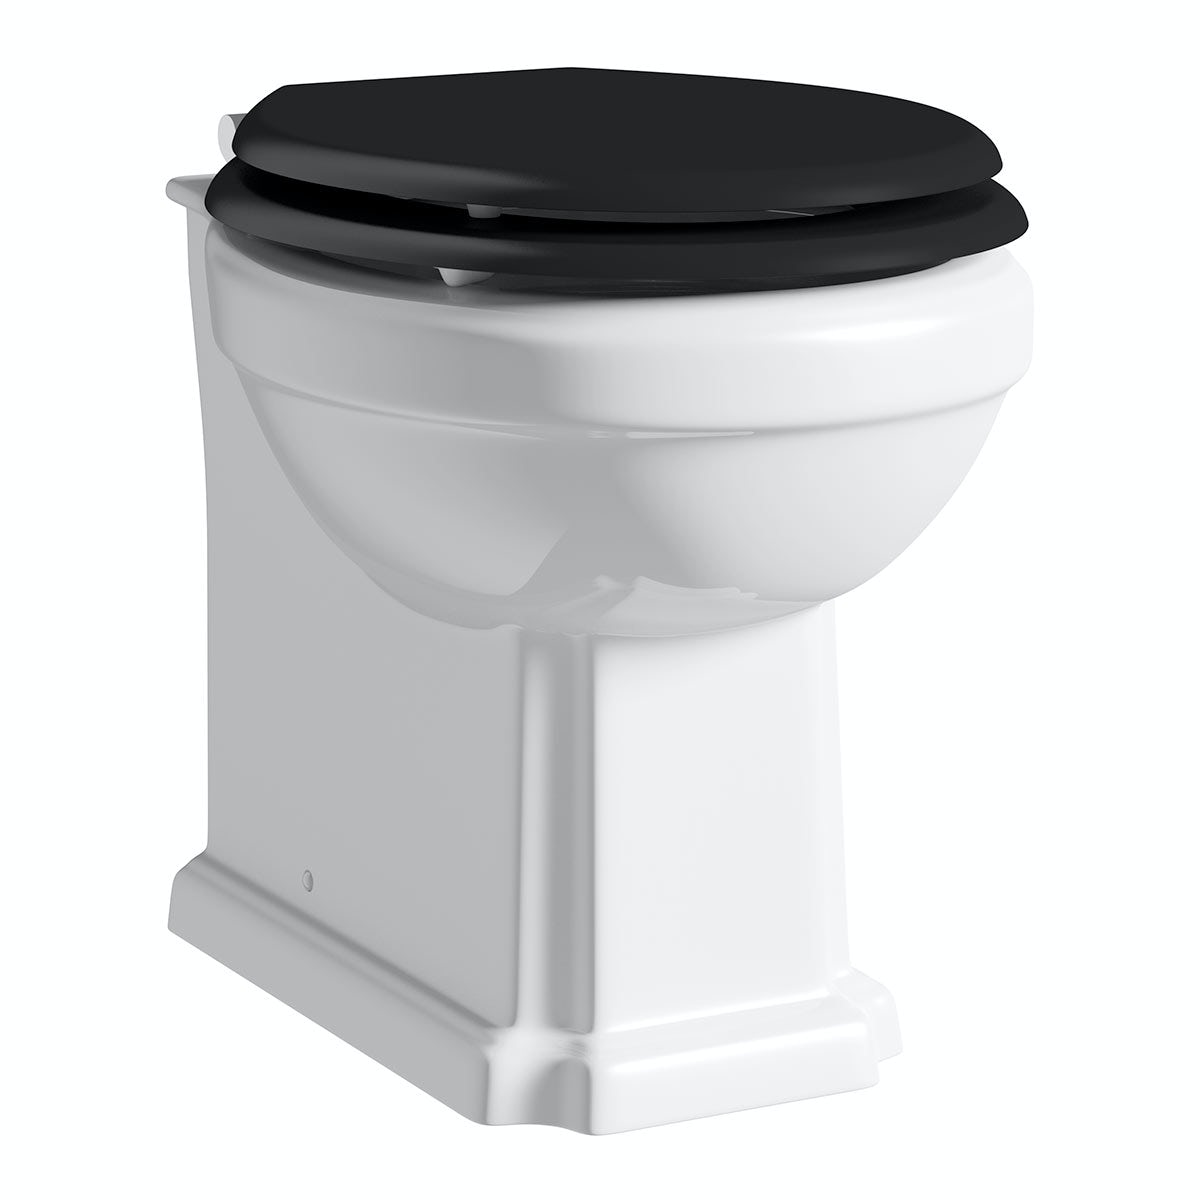 The Bath Co. Dulwich back to wall toilet with black wooden soft close seat